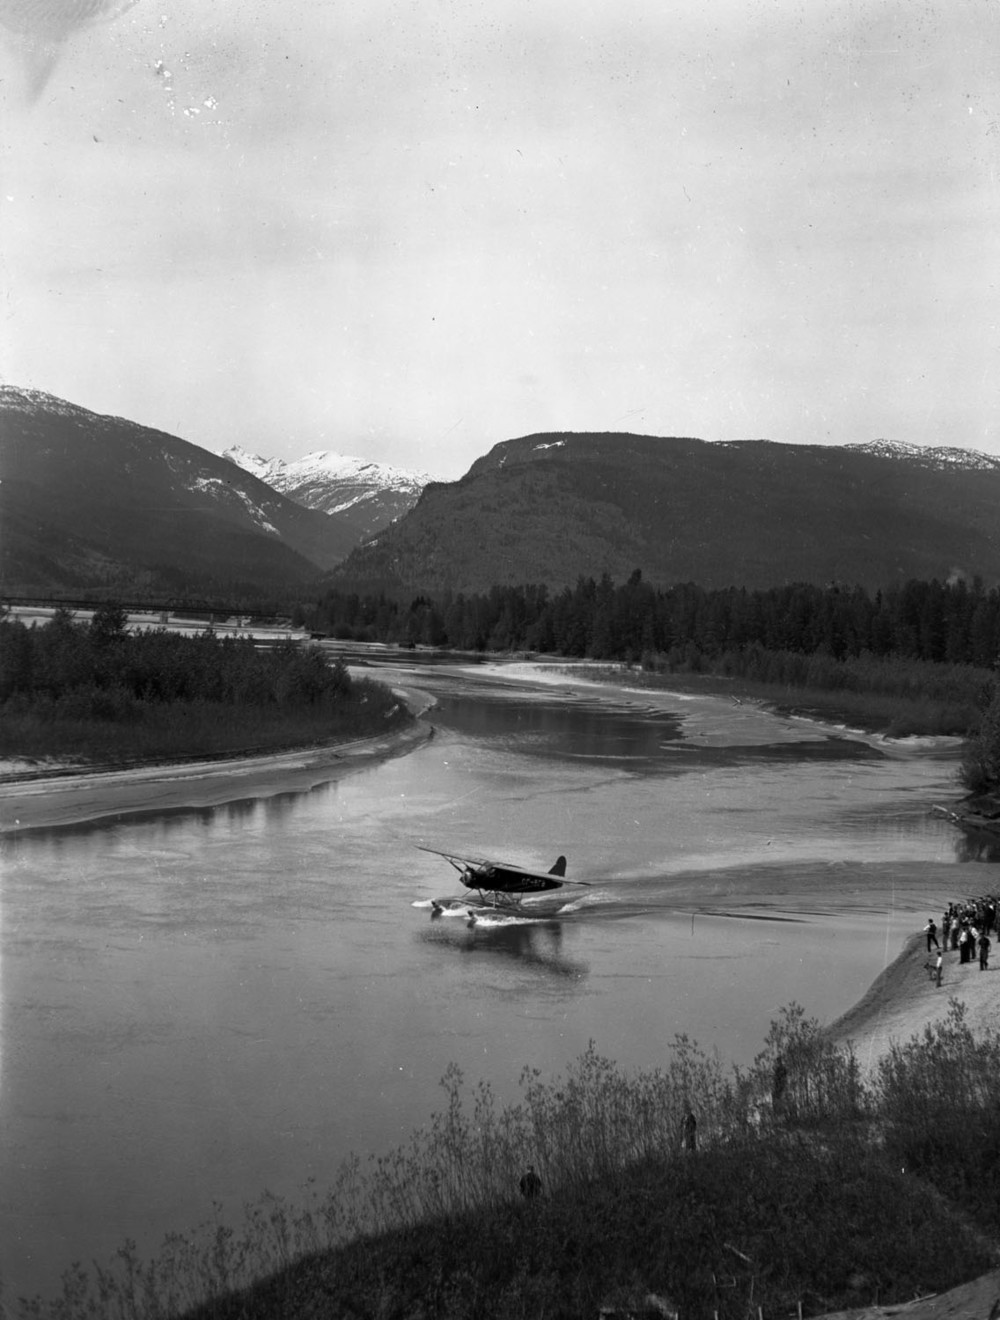 Howard McDonald and Float Plane [DN-668]